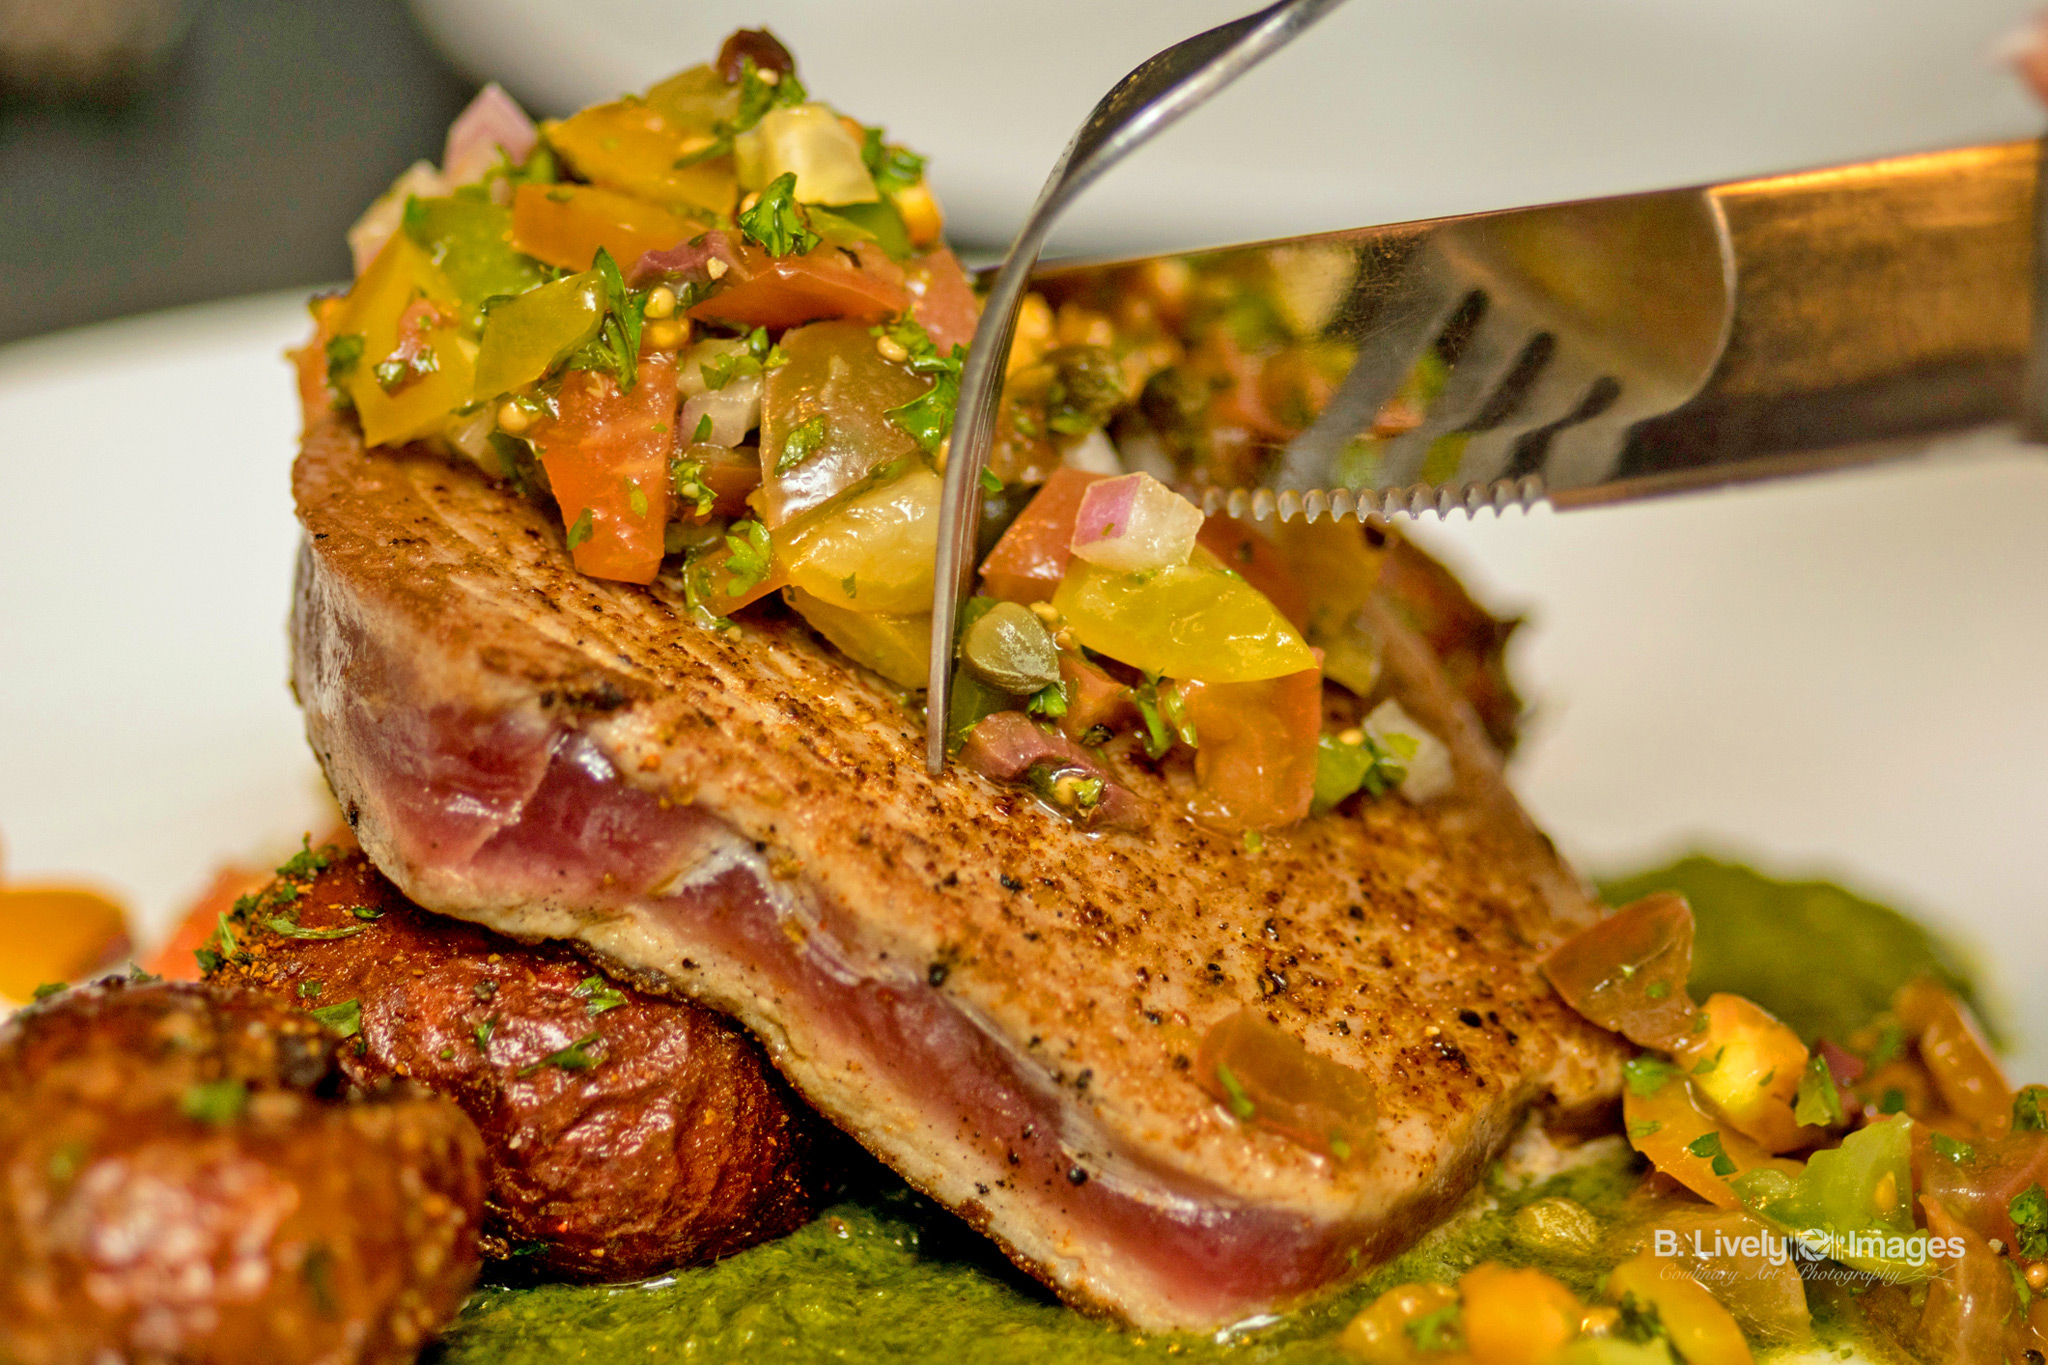 Grilled Tuna - Yellow fin tuna with crispy potatoes, heirloom tomato-olive relish and salsa verde.